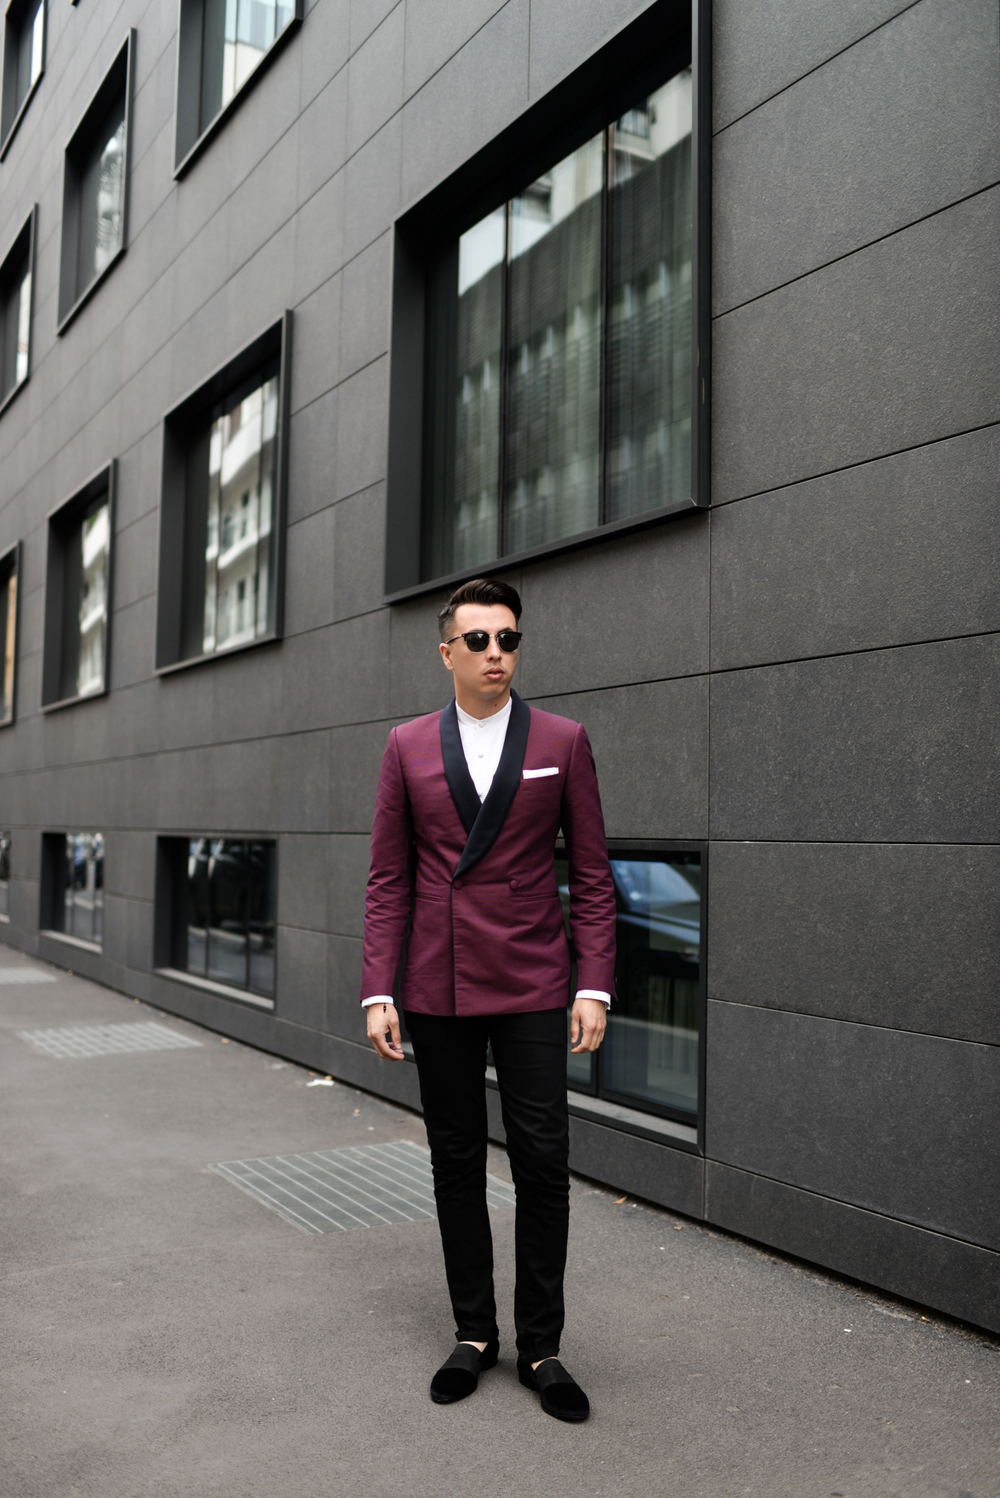 Blake Scott wearing a double breasted tuxedo jacket, with a pair of loafers you'll probably only see in your dreams.